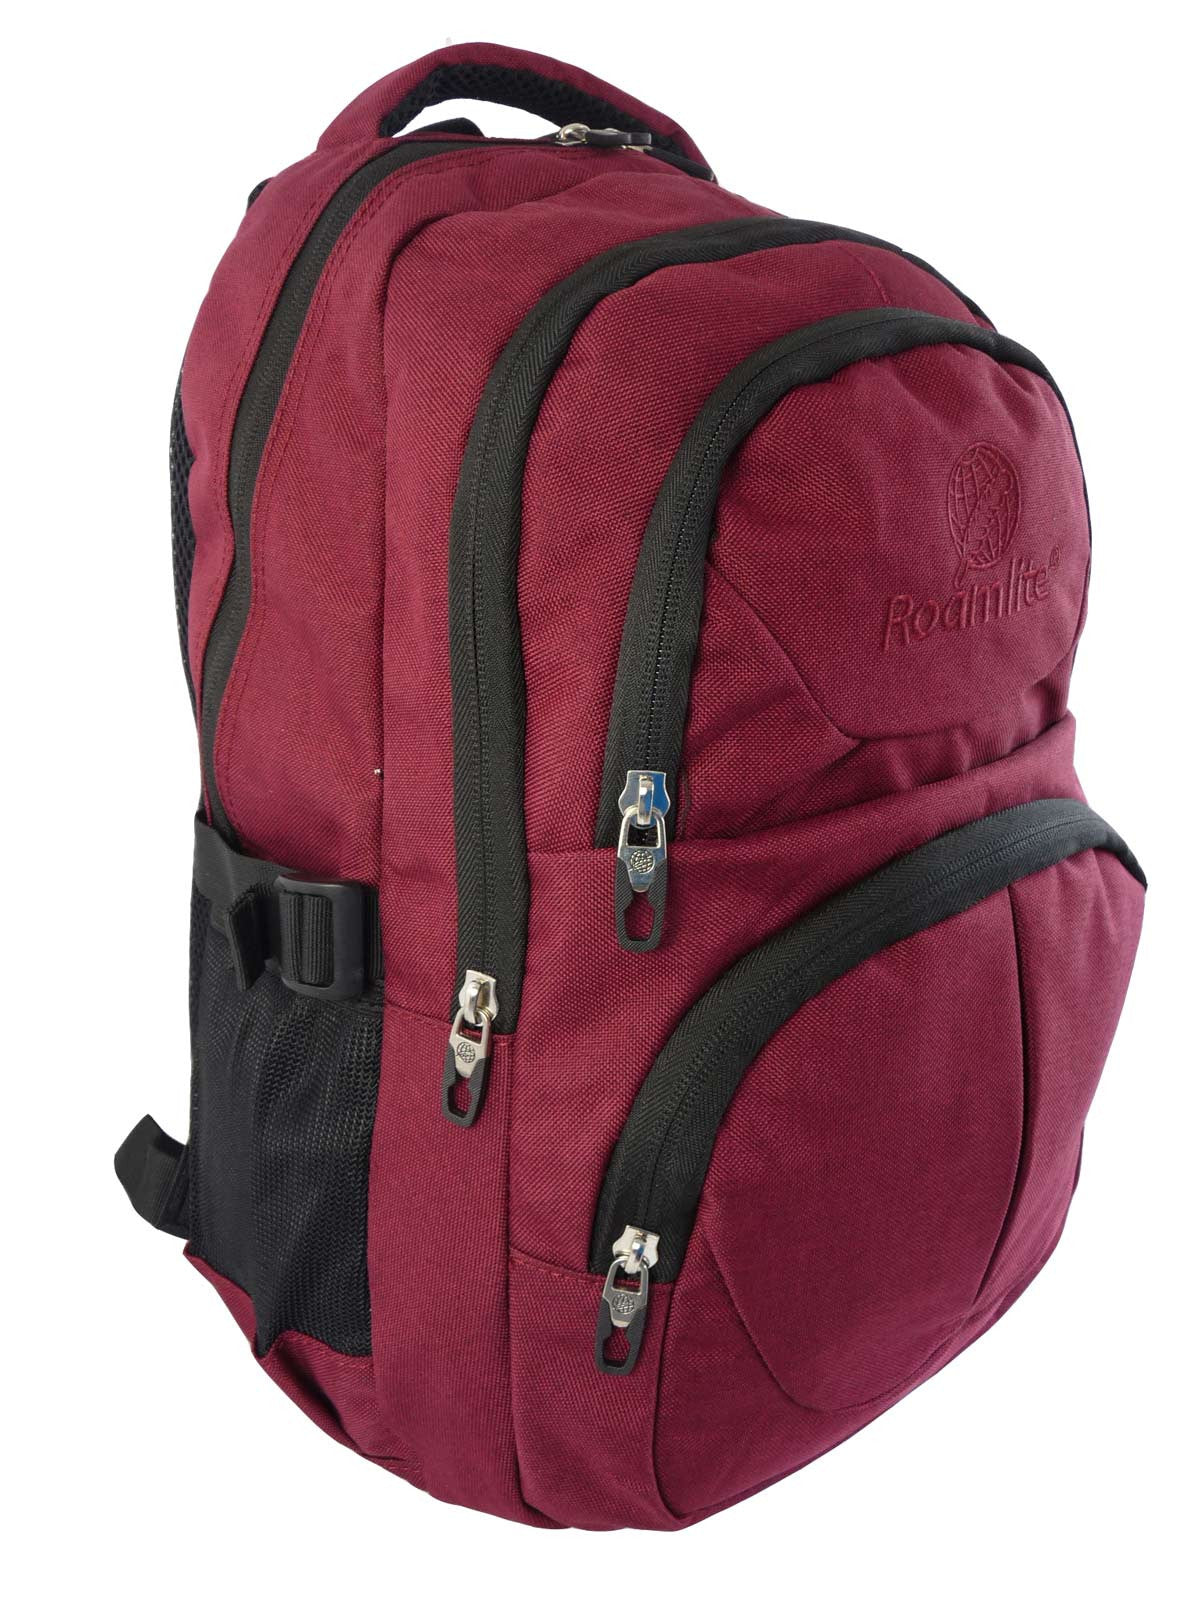 Laptop Macbook Backpack Rucksack Bag RL43Bu R Side View